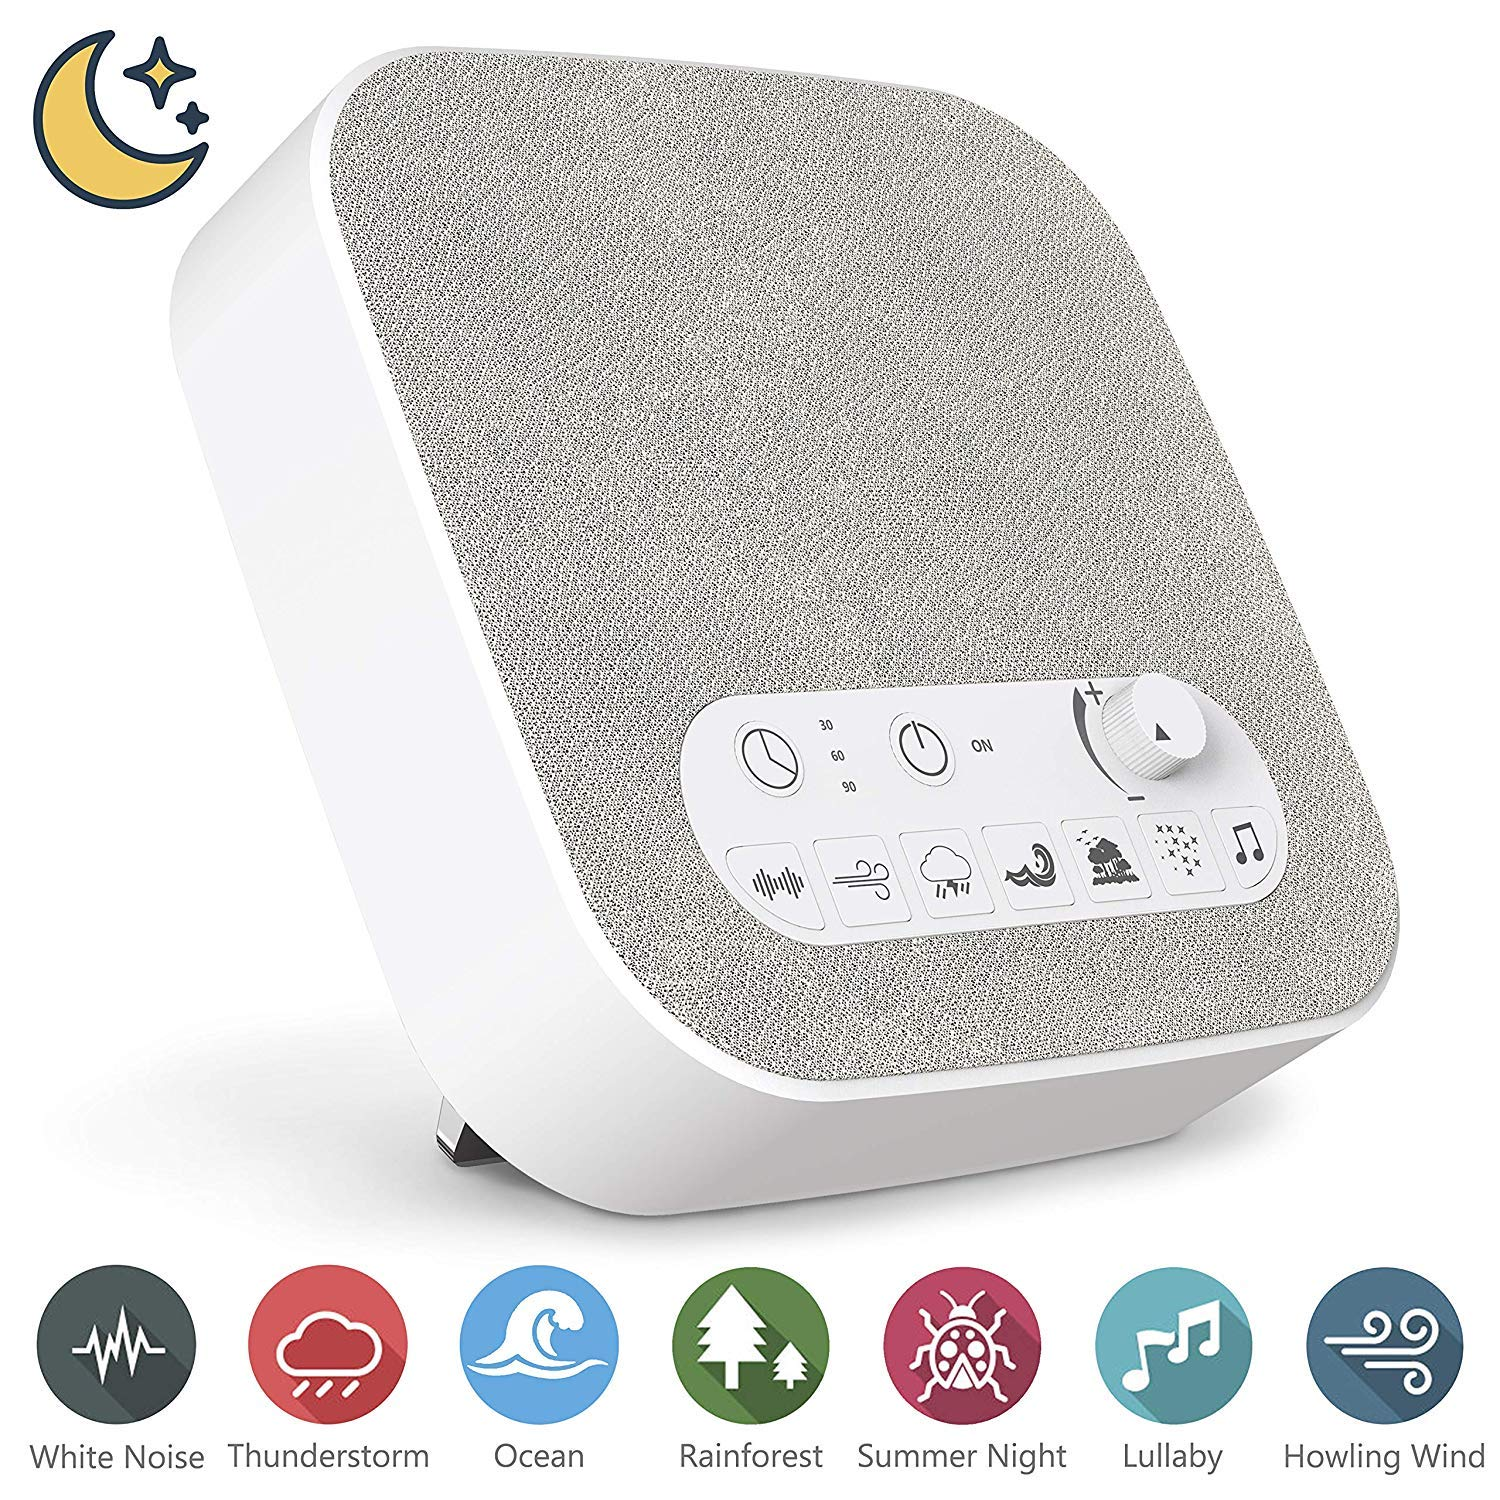 White Noise Machine for Sleeping, Aurola Sleep Sound Machine with Non-Looping Soothing Sounds for Baby Adult Traveler, Portable for Home Office Travel. Built in USB Output Charger & Timer.